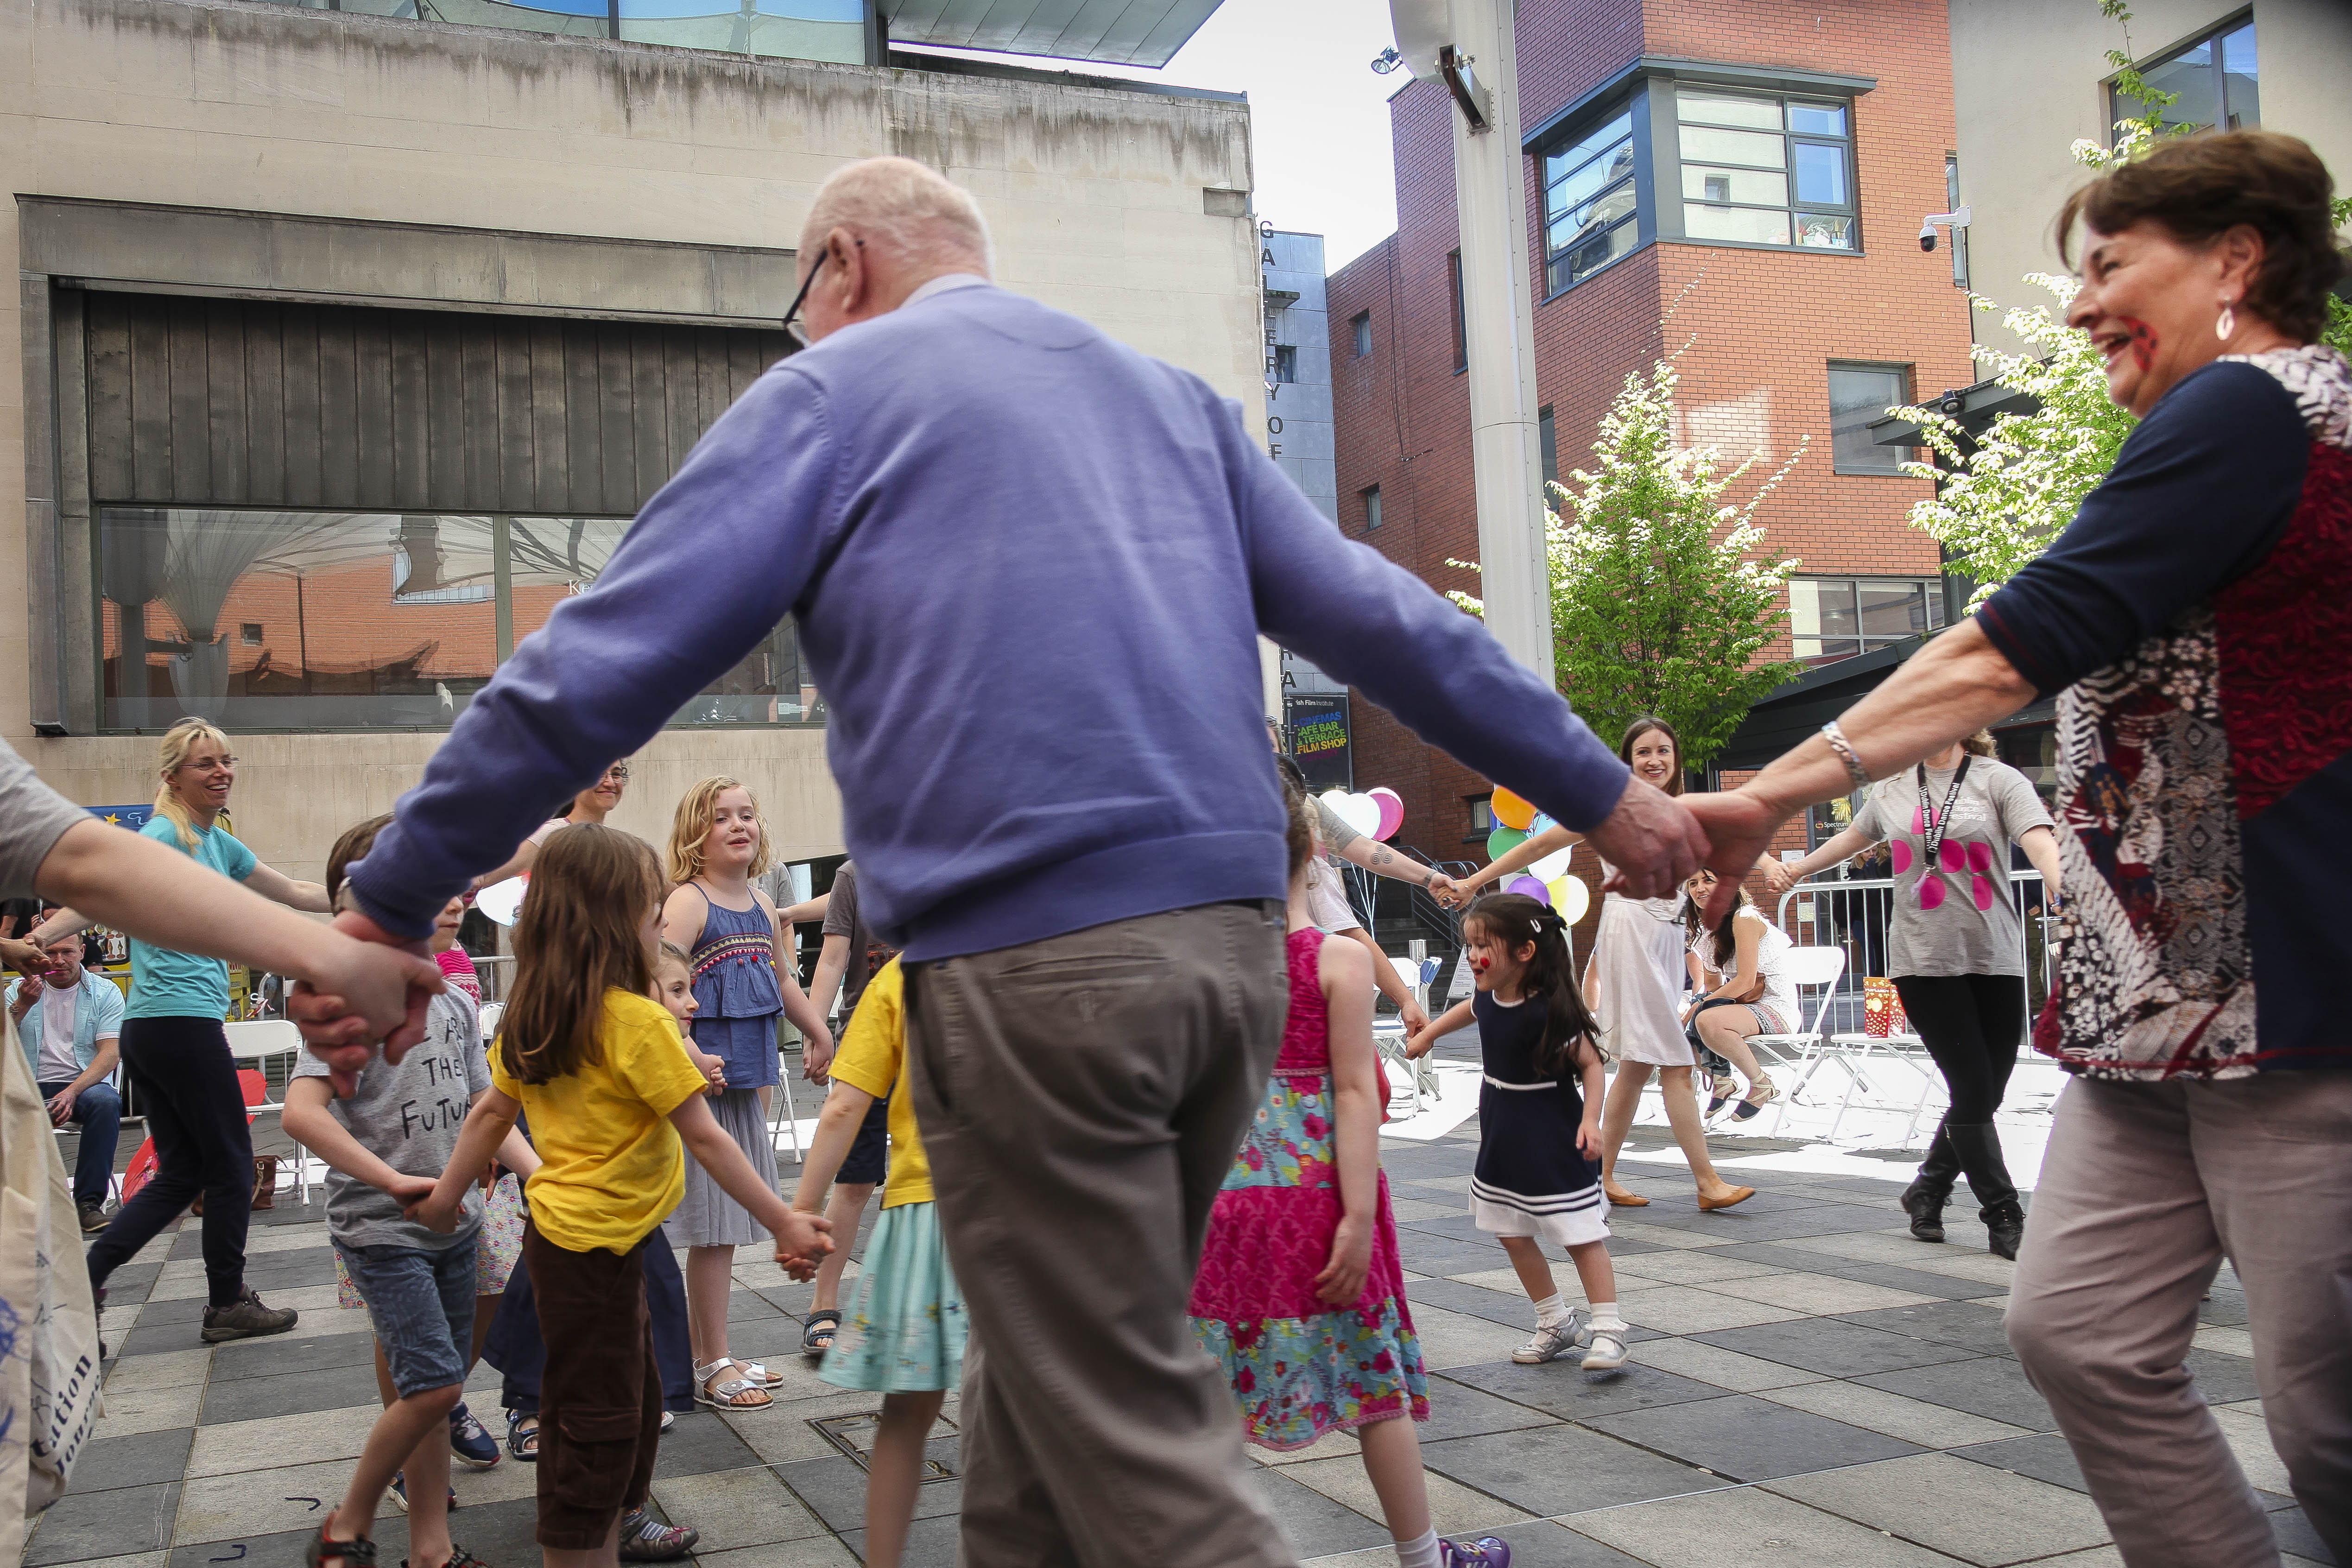 Older people and younger people dancing in Meeting House Square in Temple Bar, as part of a 2018 Bealtaine Festival event called a Life of Play.